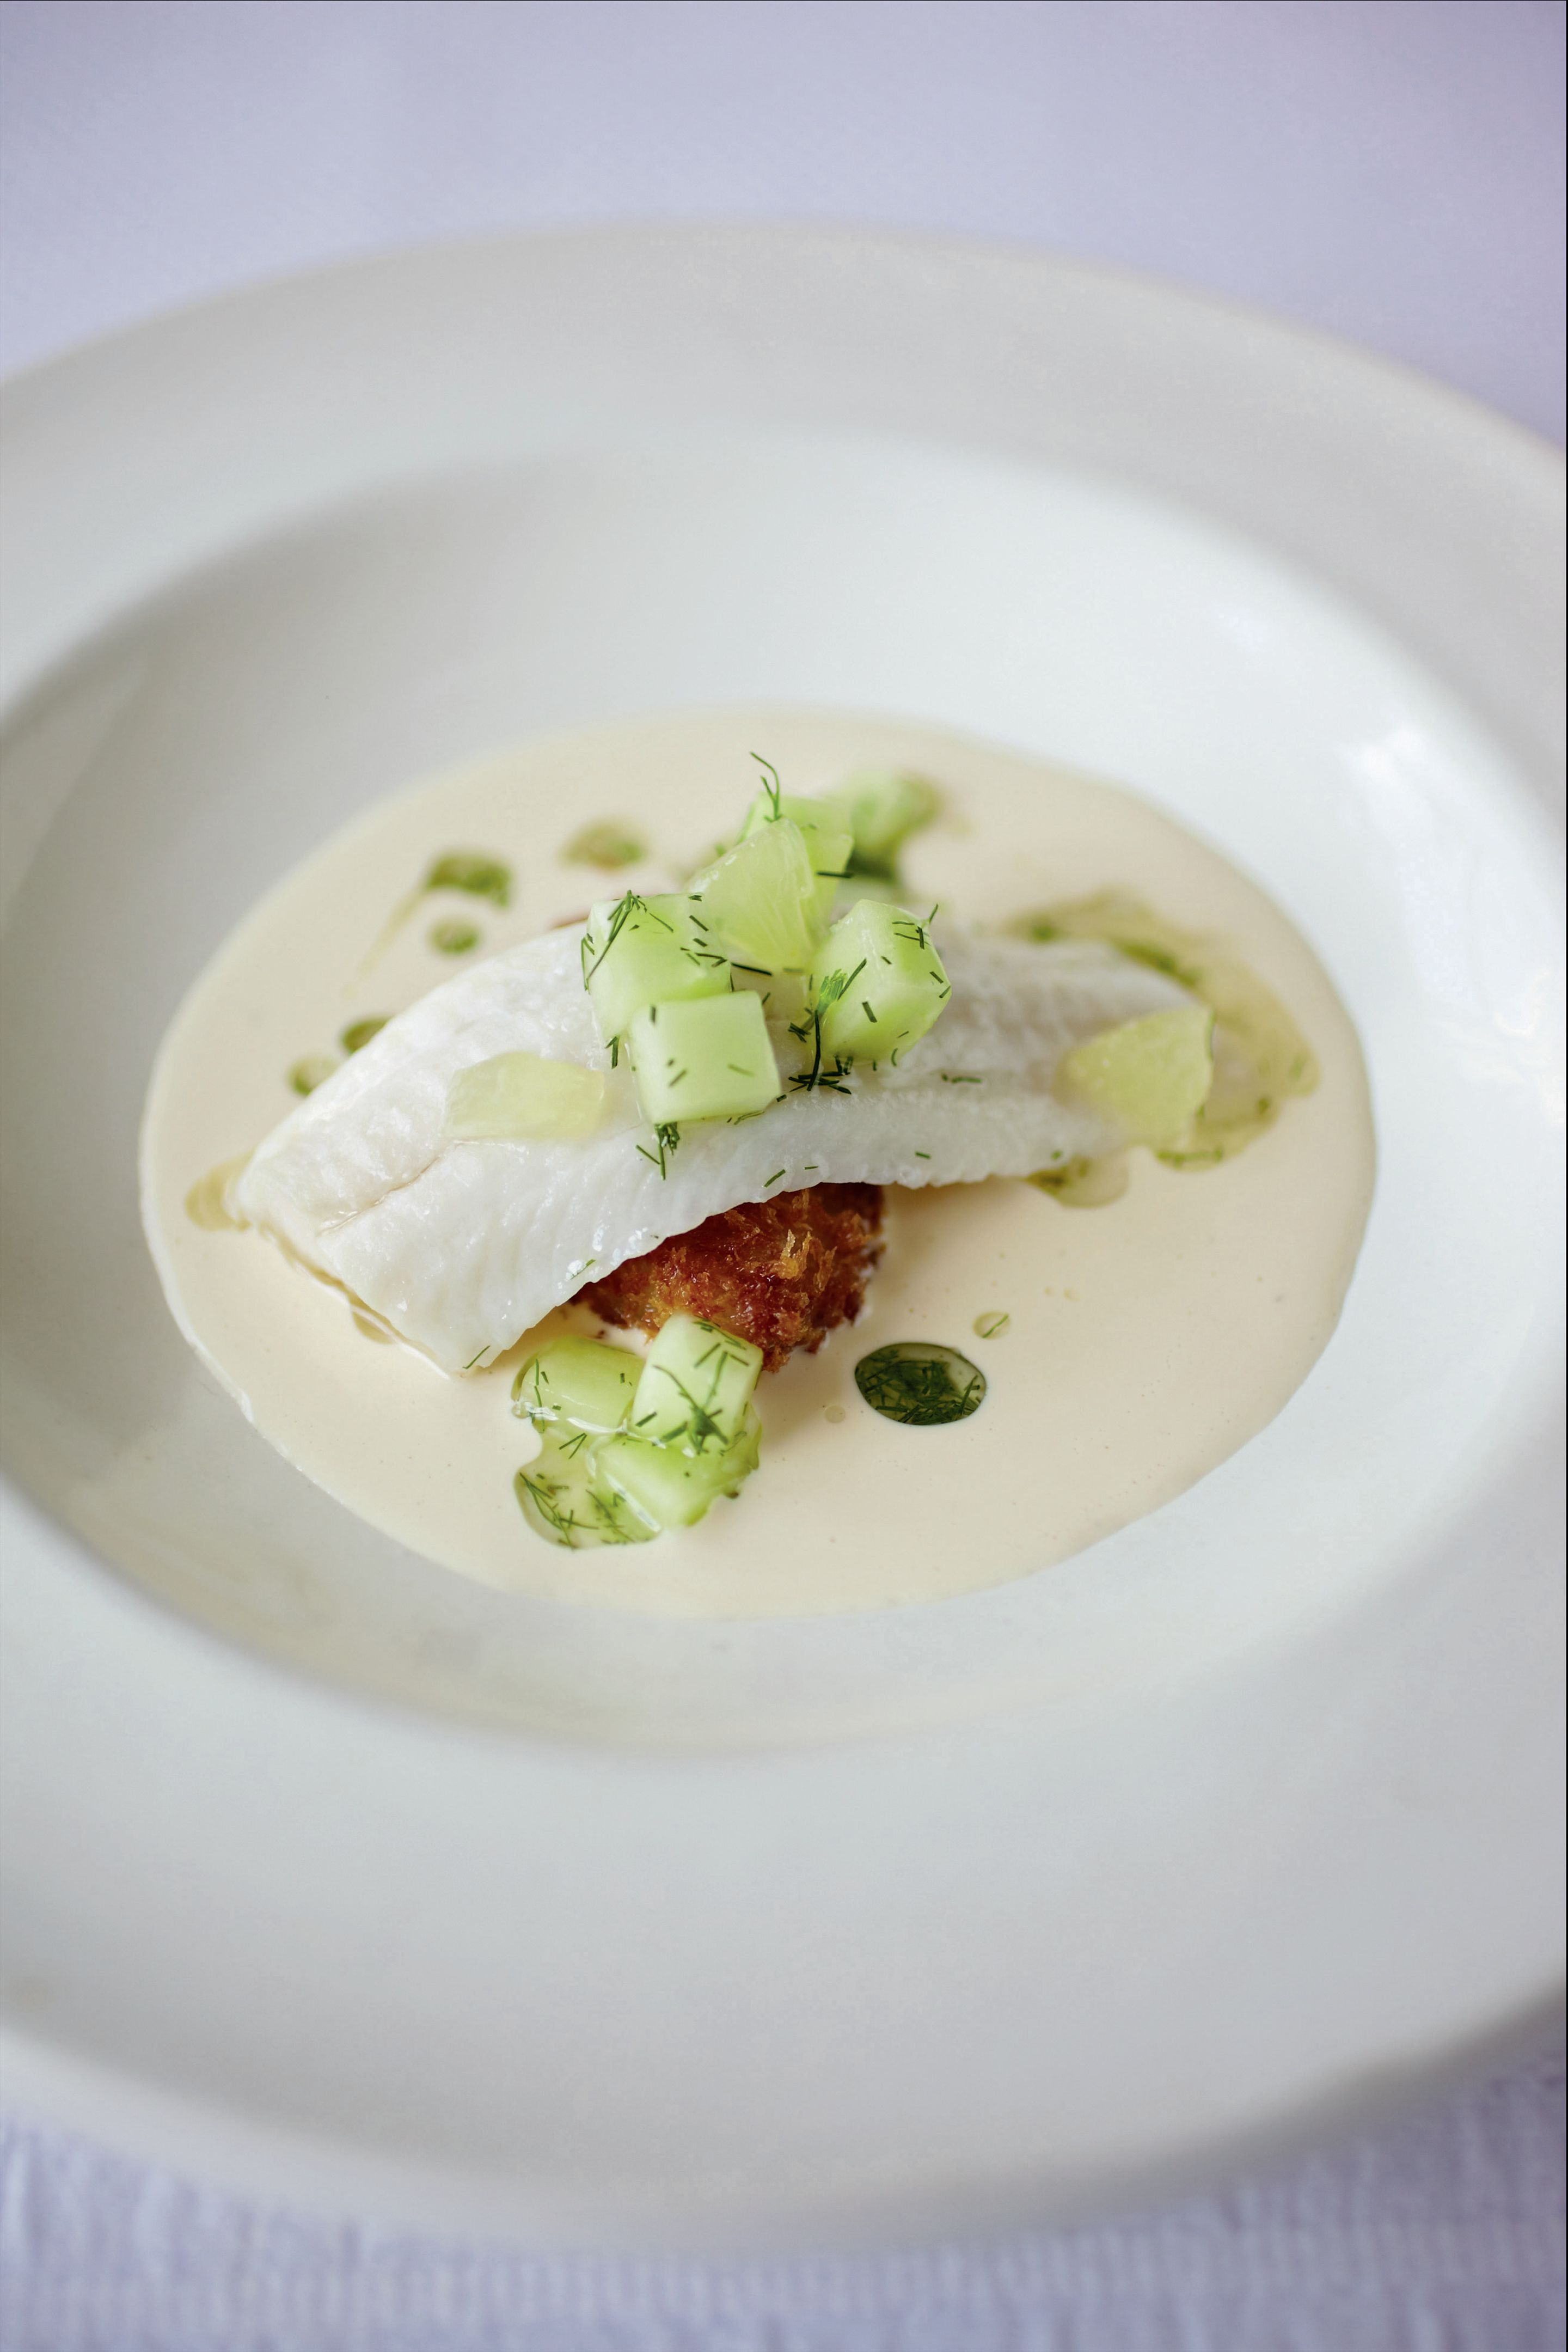 Grilled lemon sole with crispy oysters, cucumber, horseradish and lemon